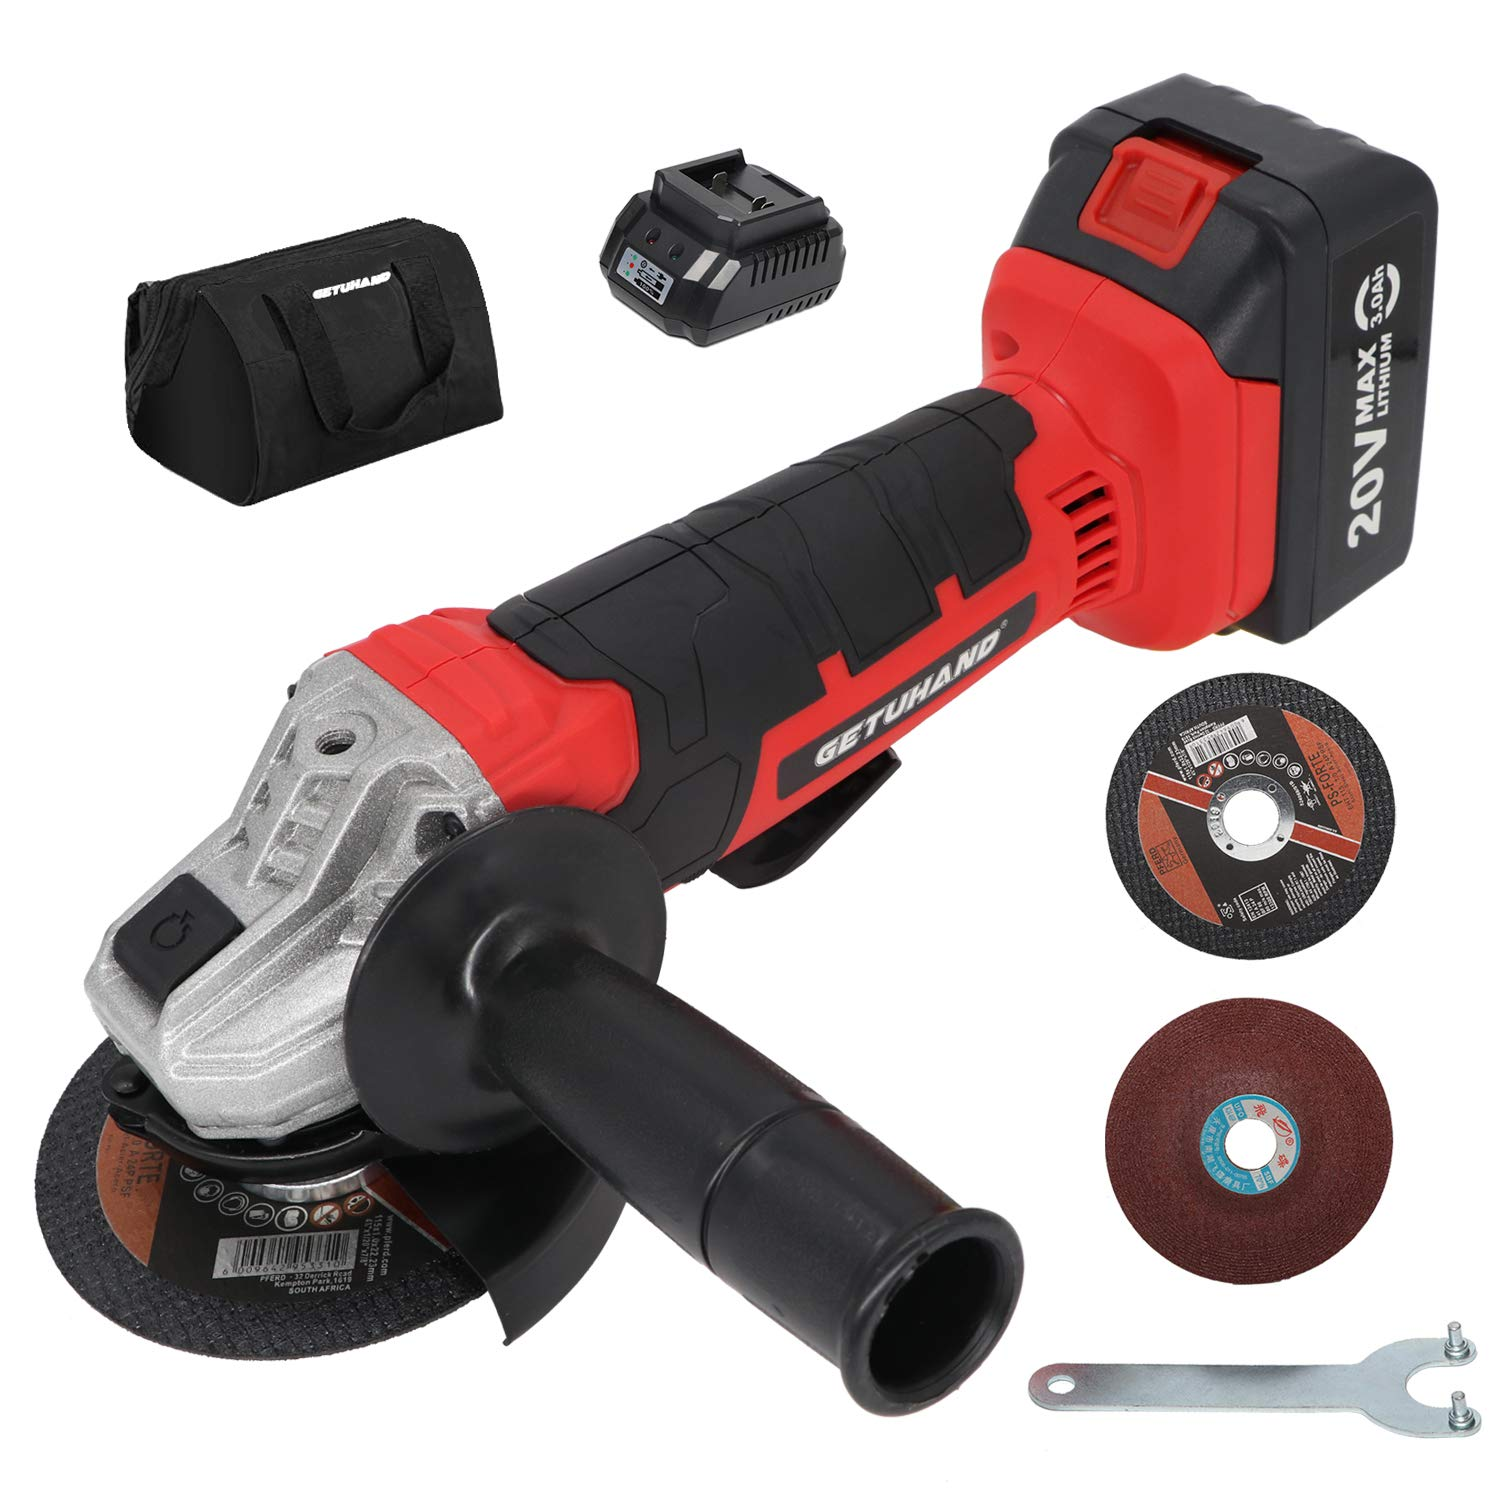 """GETUHAND 20V 4-1/2""""Cordless Angle Grinder, Power Angle Grinder Kit with 3.0Ah Li-Ion Battery and Fast Charger, 3-Position Adjustable Auxiliary Handle, Tool Case,Cutting Wheel,Grinding Wheel"""